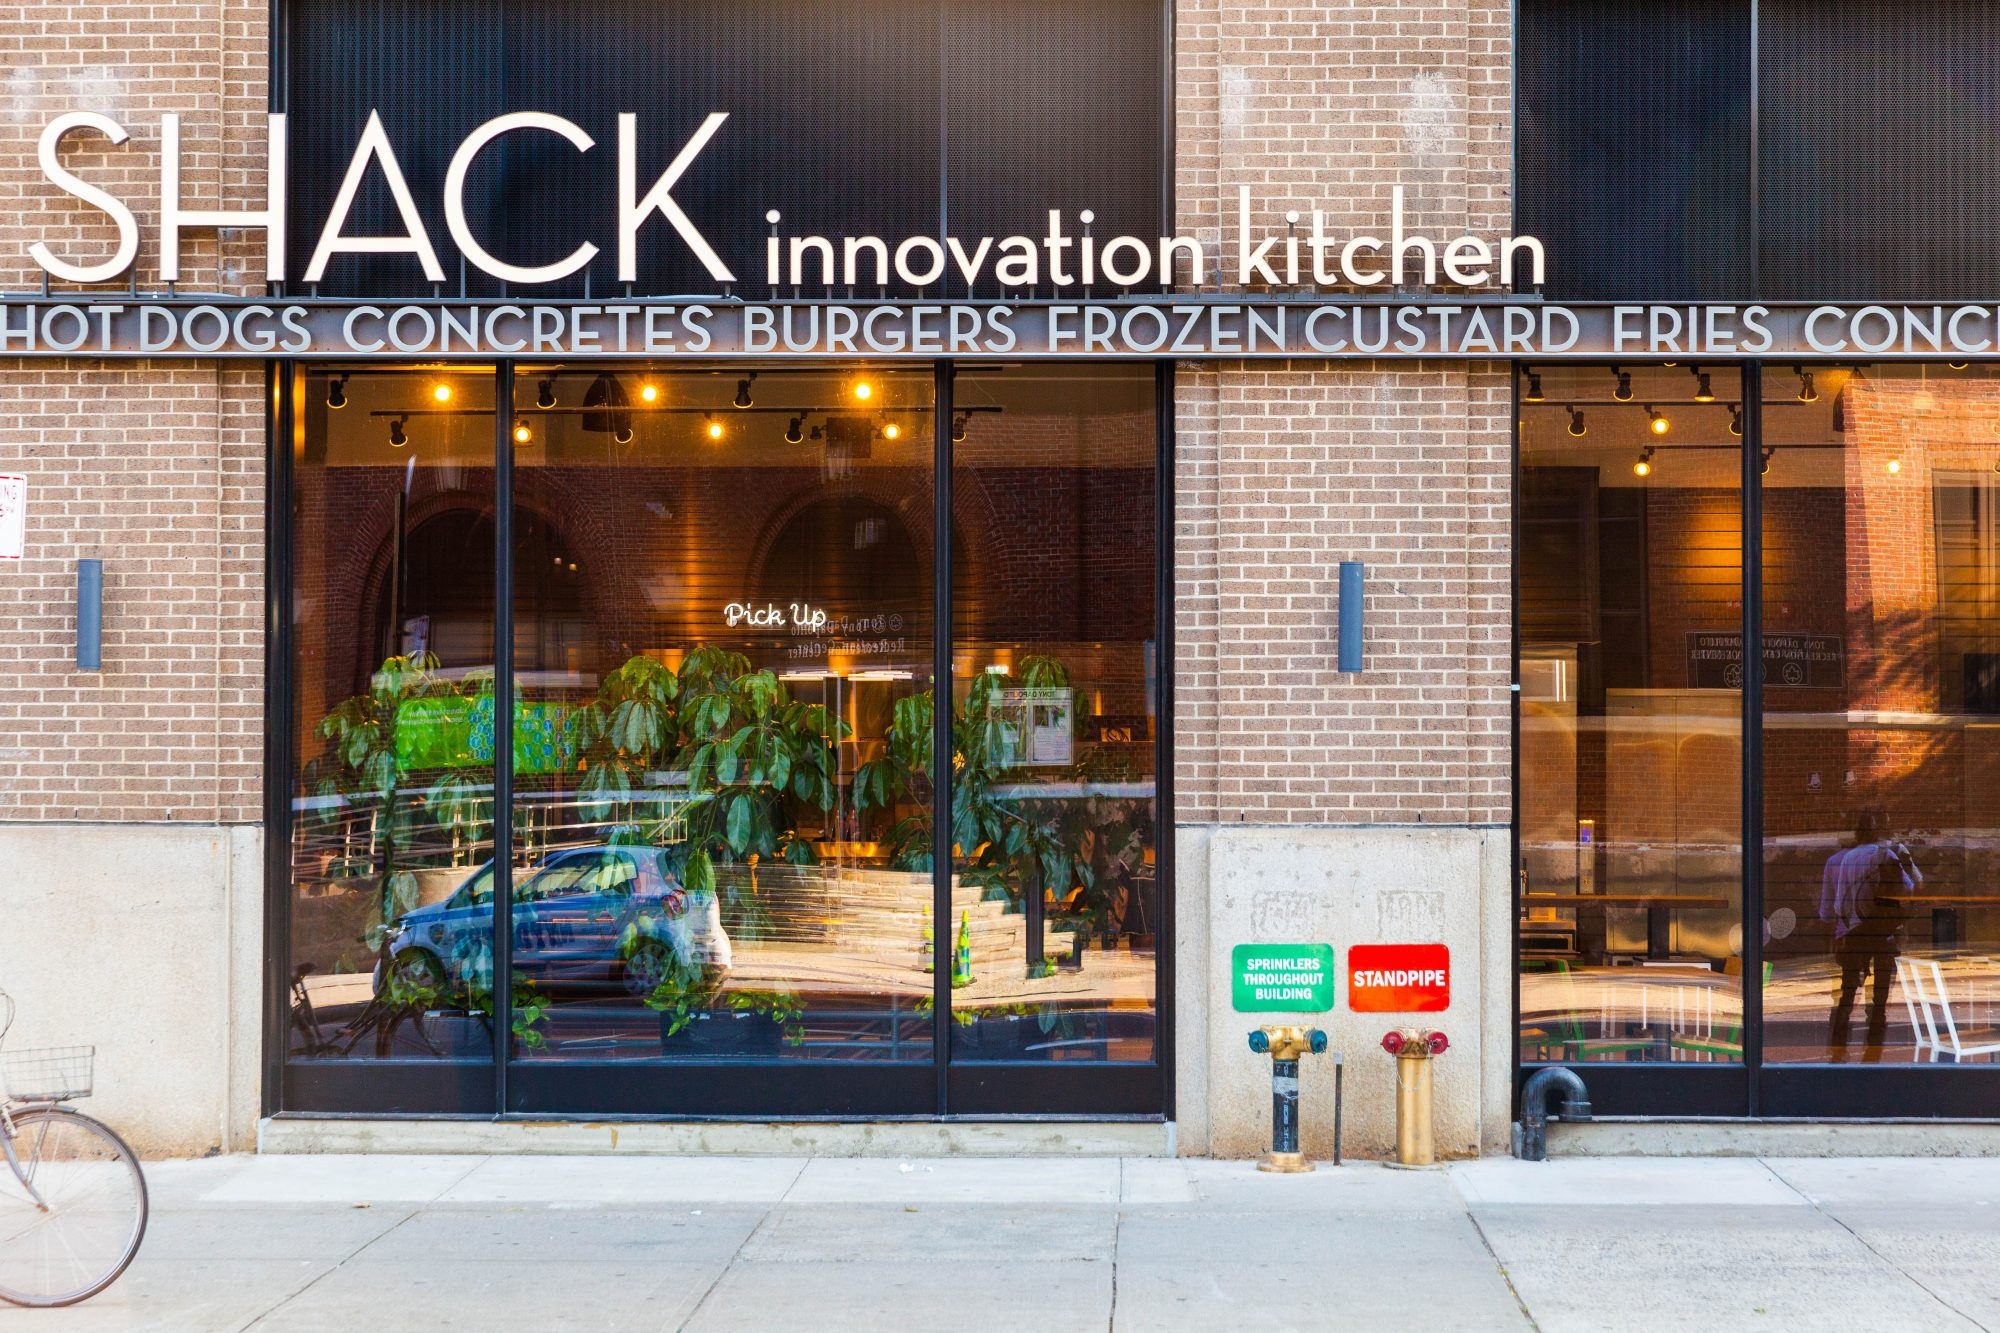 Shake Shack Innovation Kitchen